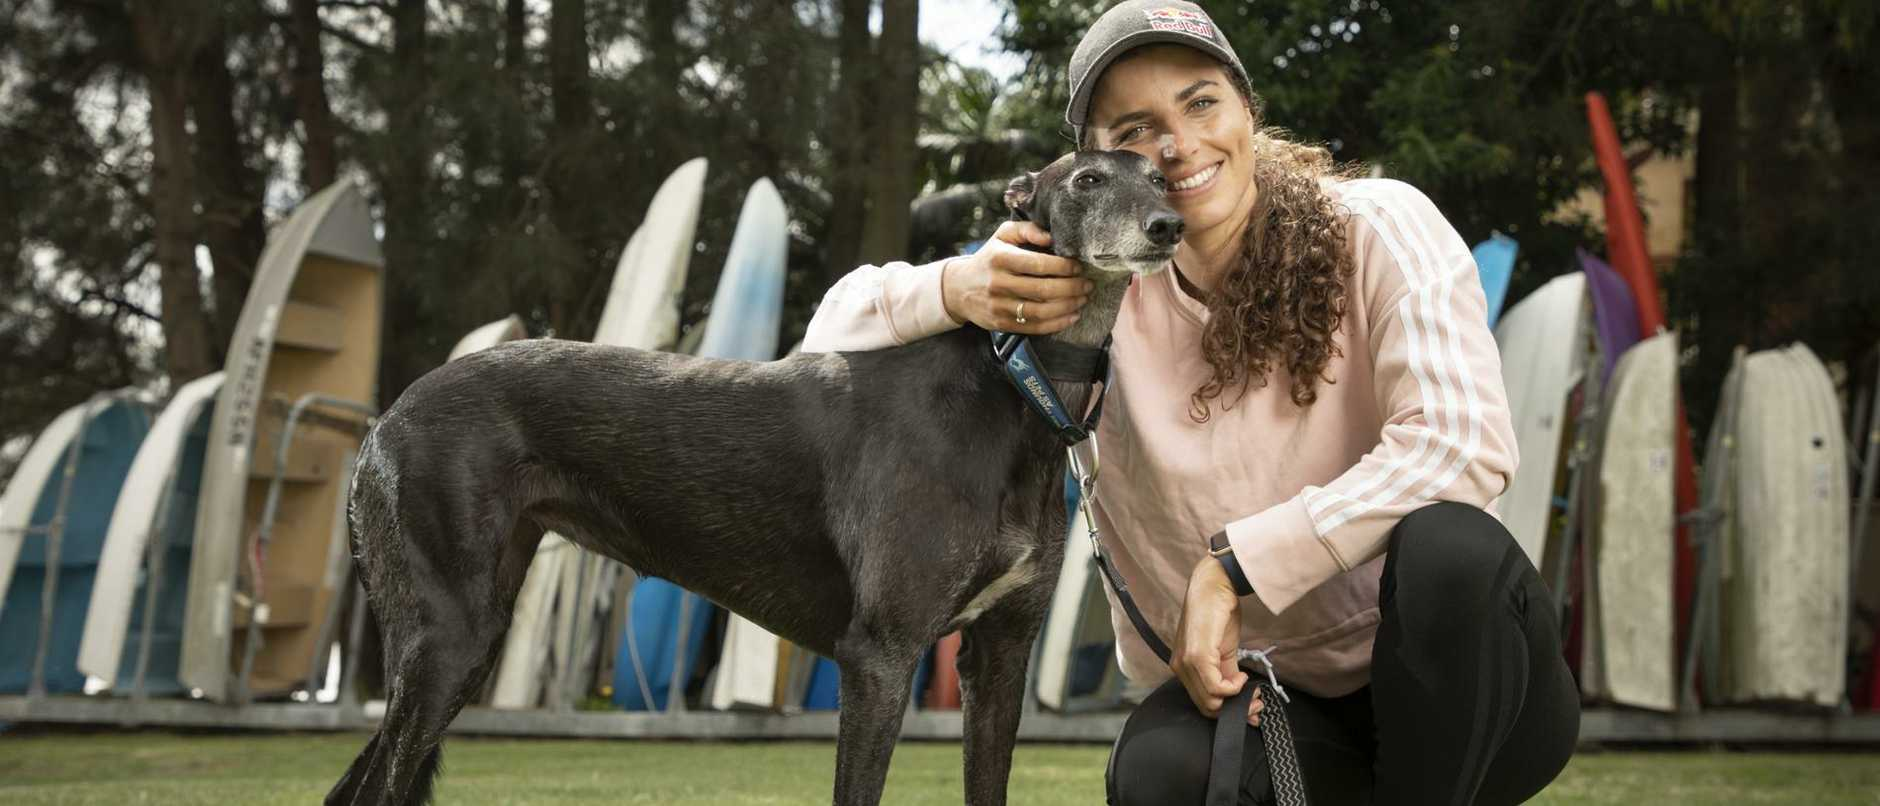 Jess Fox hit rough waters when the Tokyo Olympics were postponed last year due to the COVID-19 pandemic and found a lifeline in greyhound Pink.